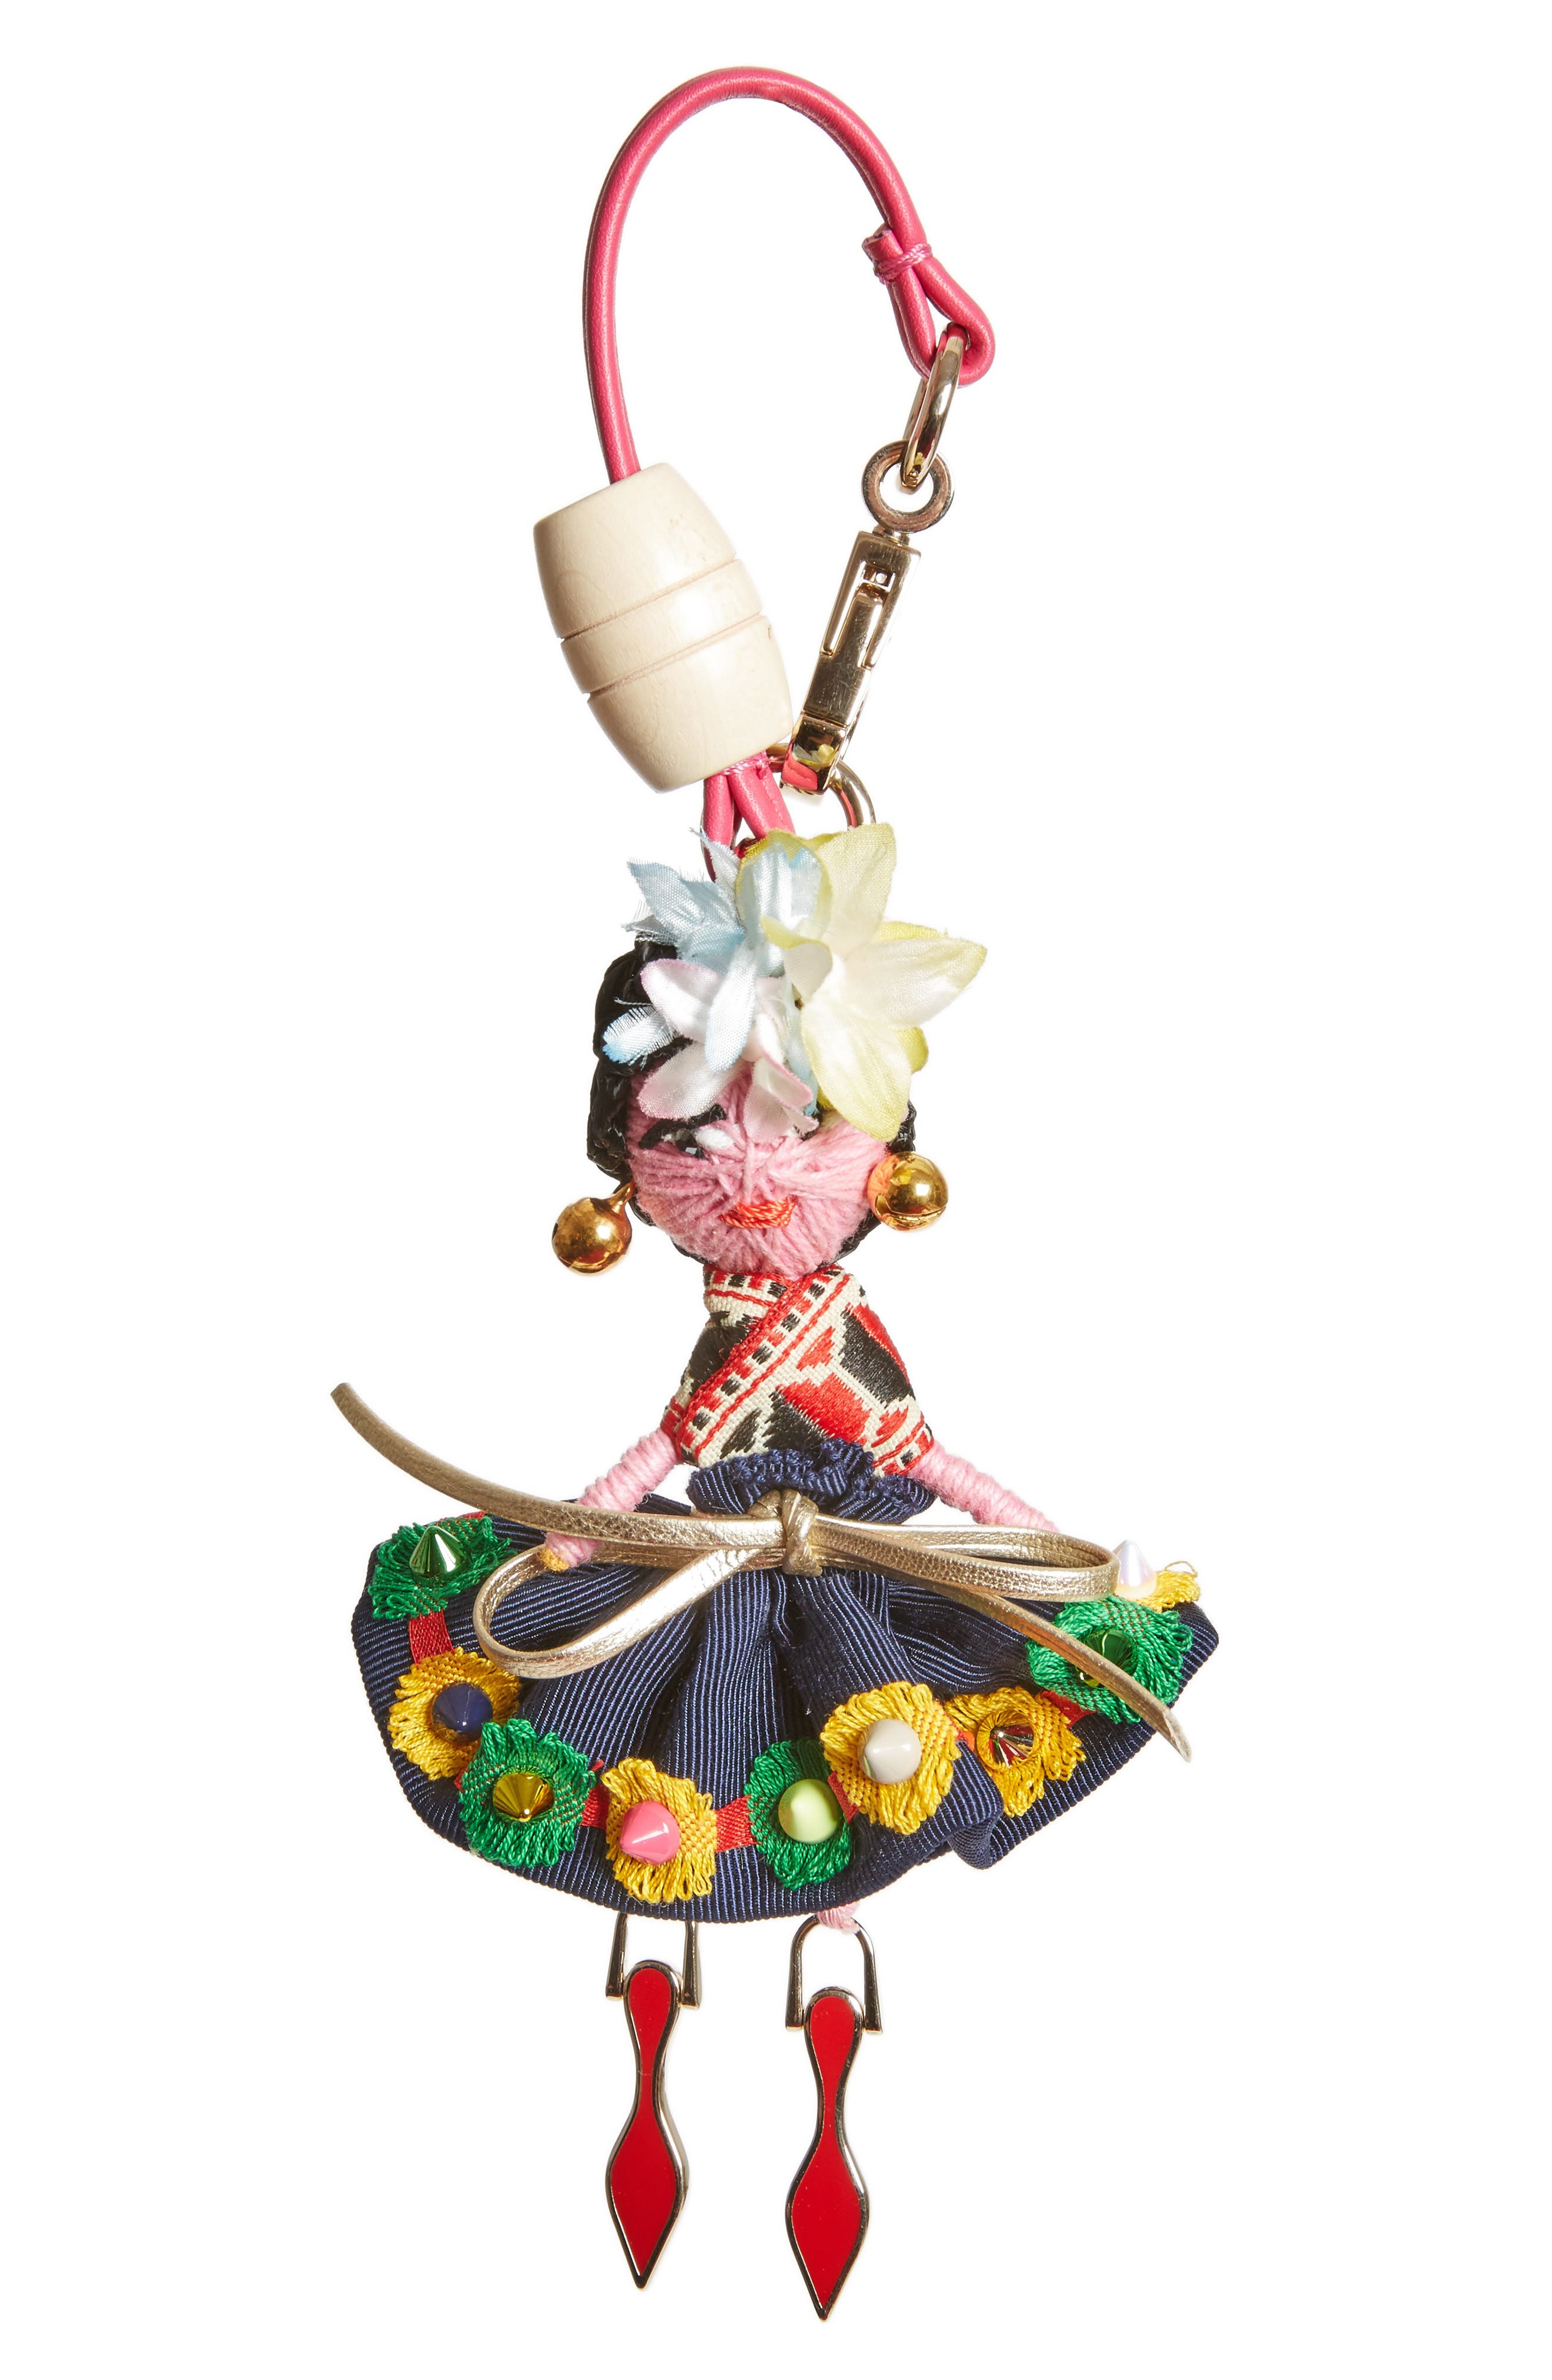 Alternate Image 1 Selected - Christian Louboutin Mexiloubi Doll Bag Charm